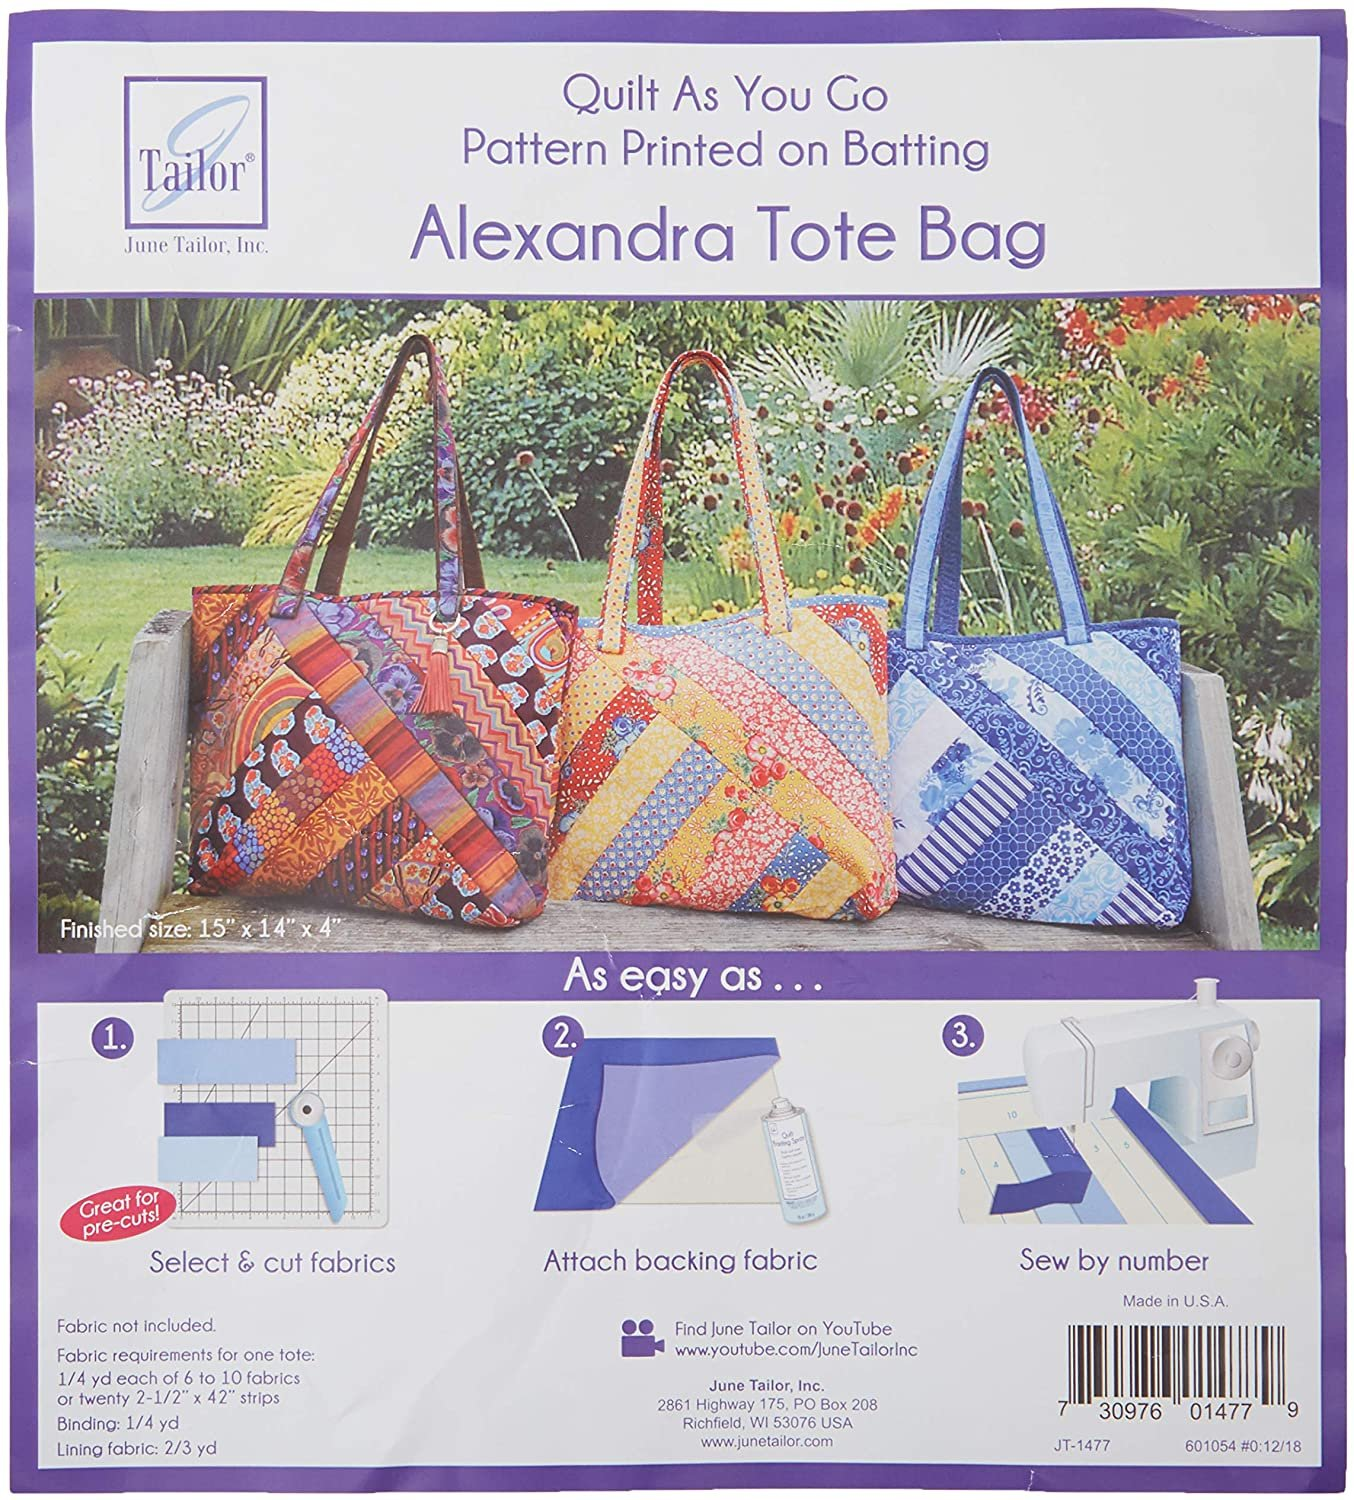 *ALEXANDRA TOTE BAG//QUILT AS YOU GO SEW BY NUMBER//PRINTED BATTING//JUNE TAILOR INC